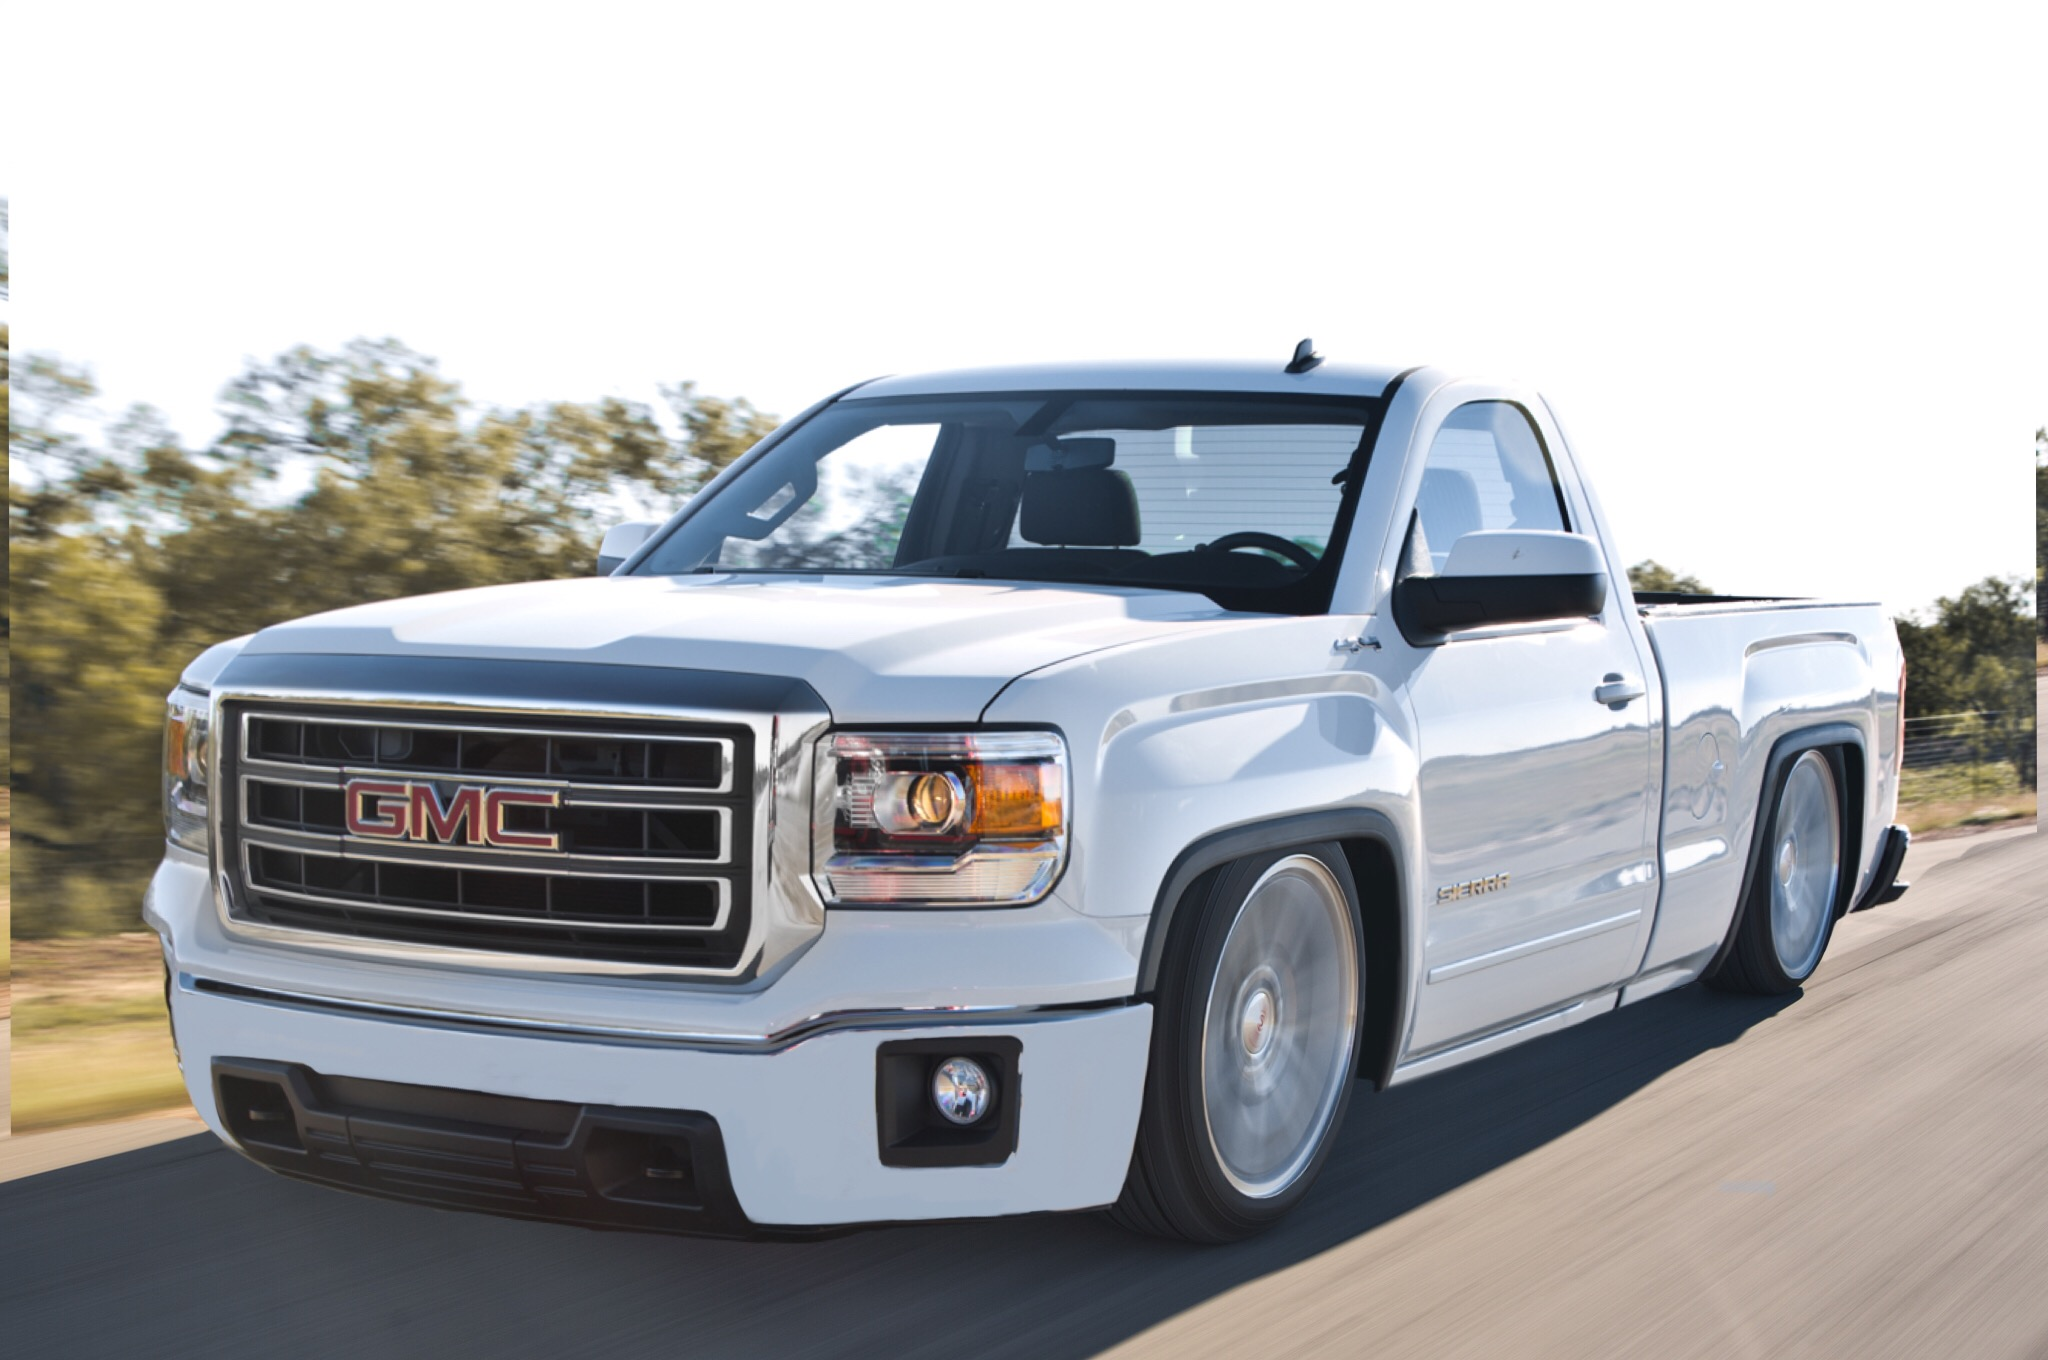 08 Gmc Sierra >> free photoshop done by me, want any trucks photoshoped?...